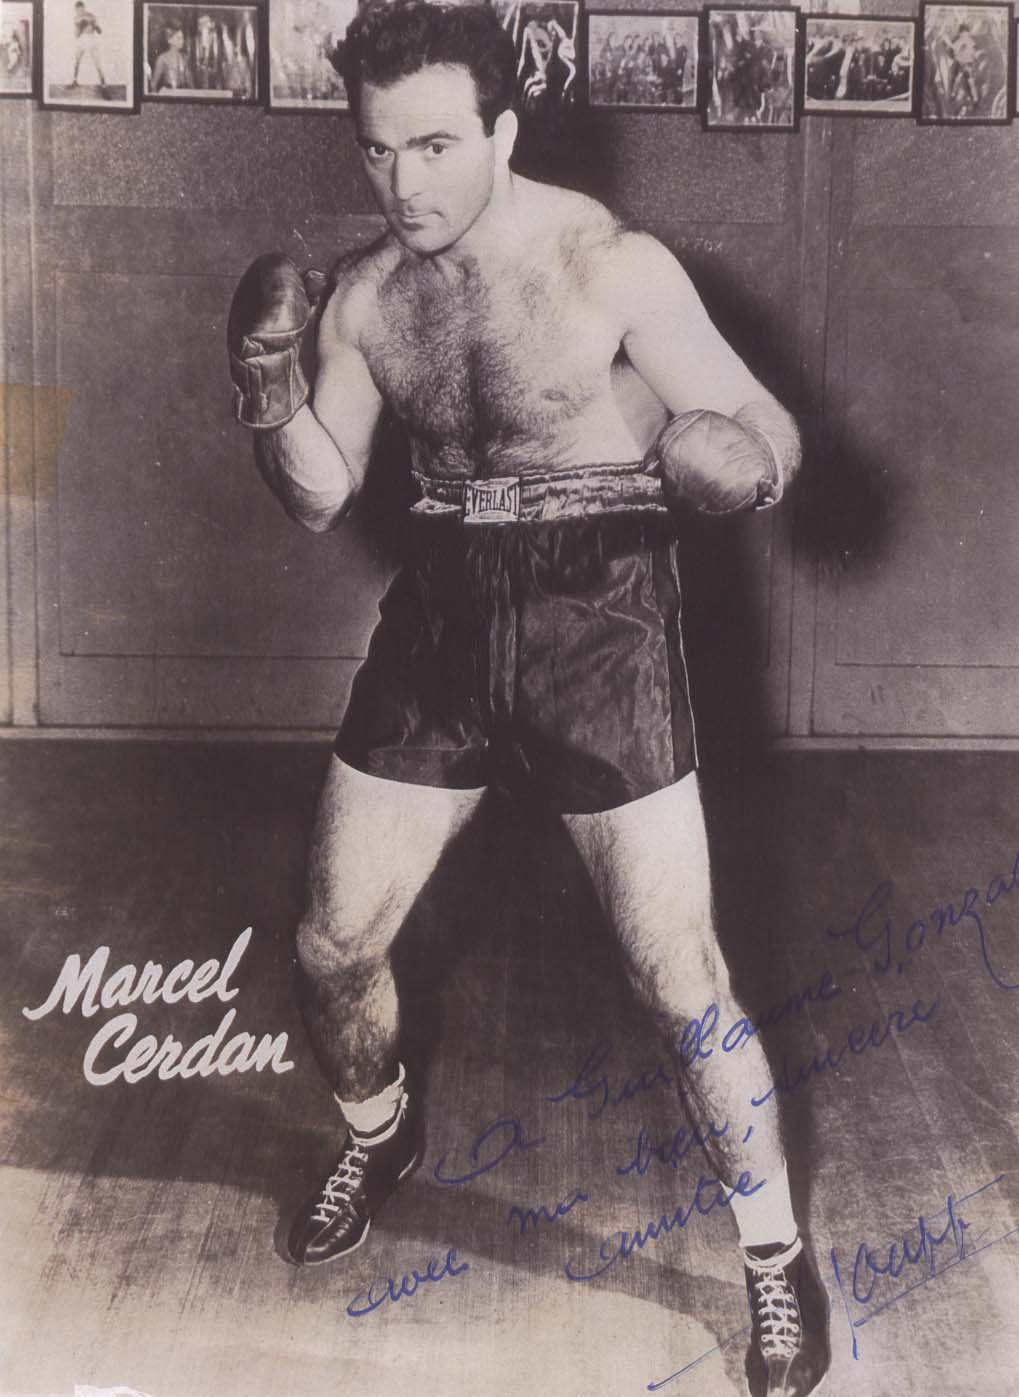 Marcel Cerdan Professional Boxer Wiring Diagrams Circuits Gt Low Loss Step Down Converter L24488 Nextgr Headline Rh Ringsideboxingshow Com Boxrec Bobo Olson